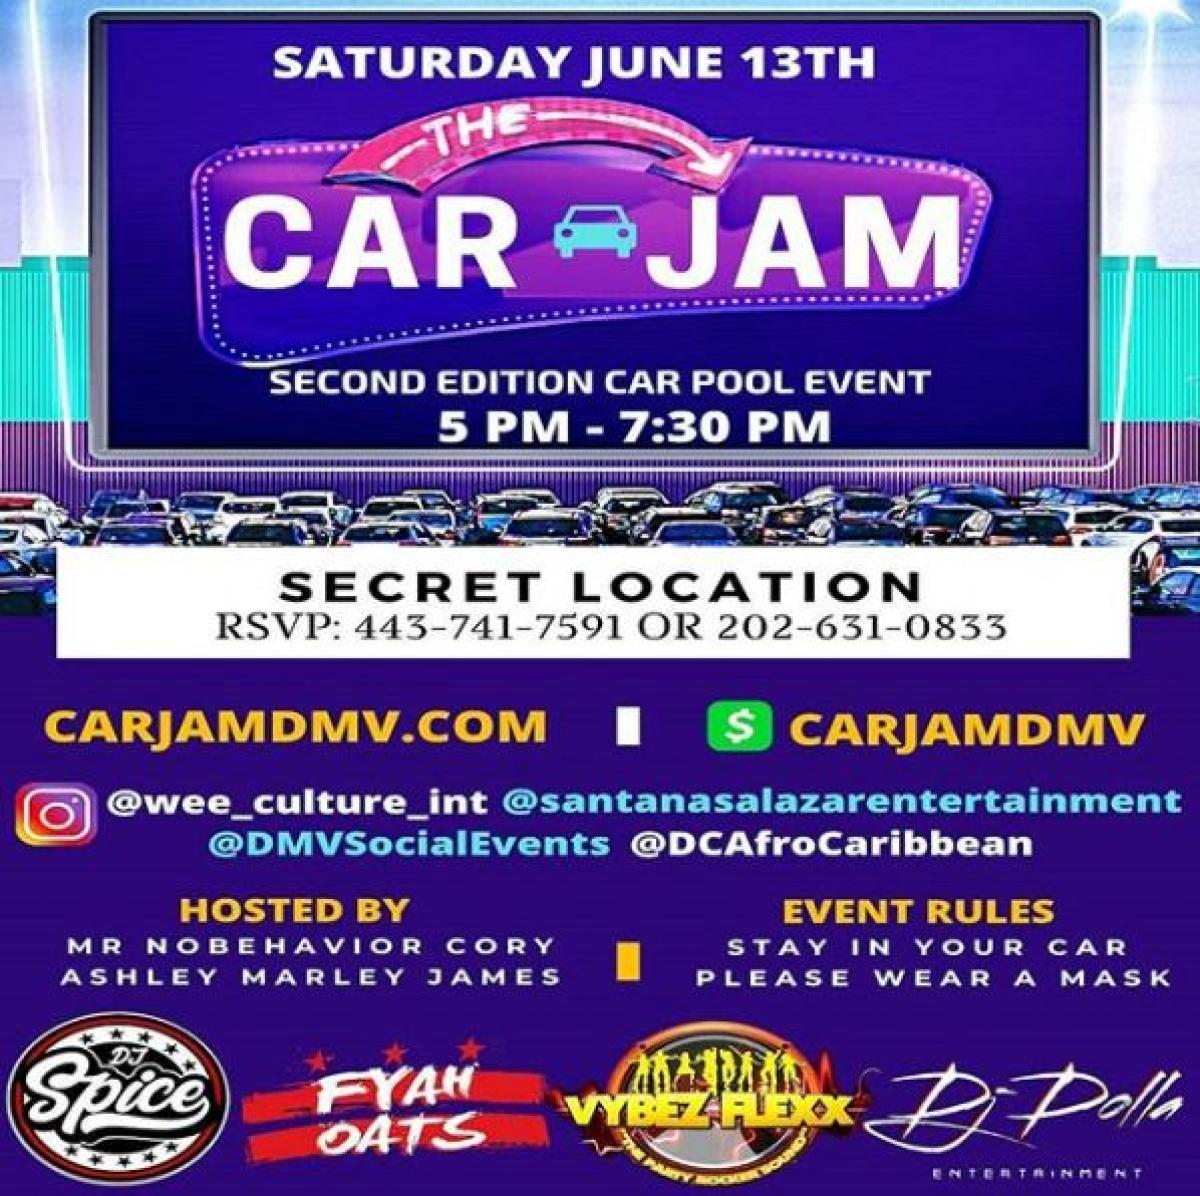 Second Edition Car Pool Jam flyer or graphic.